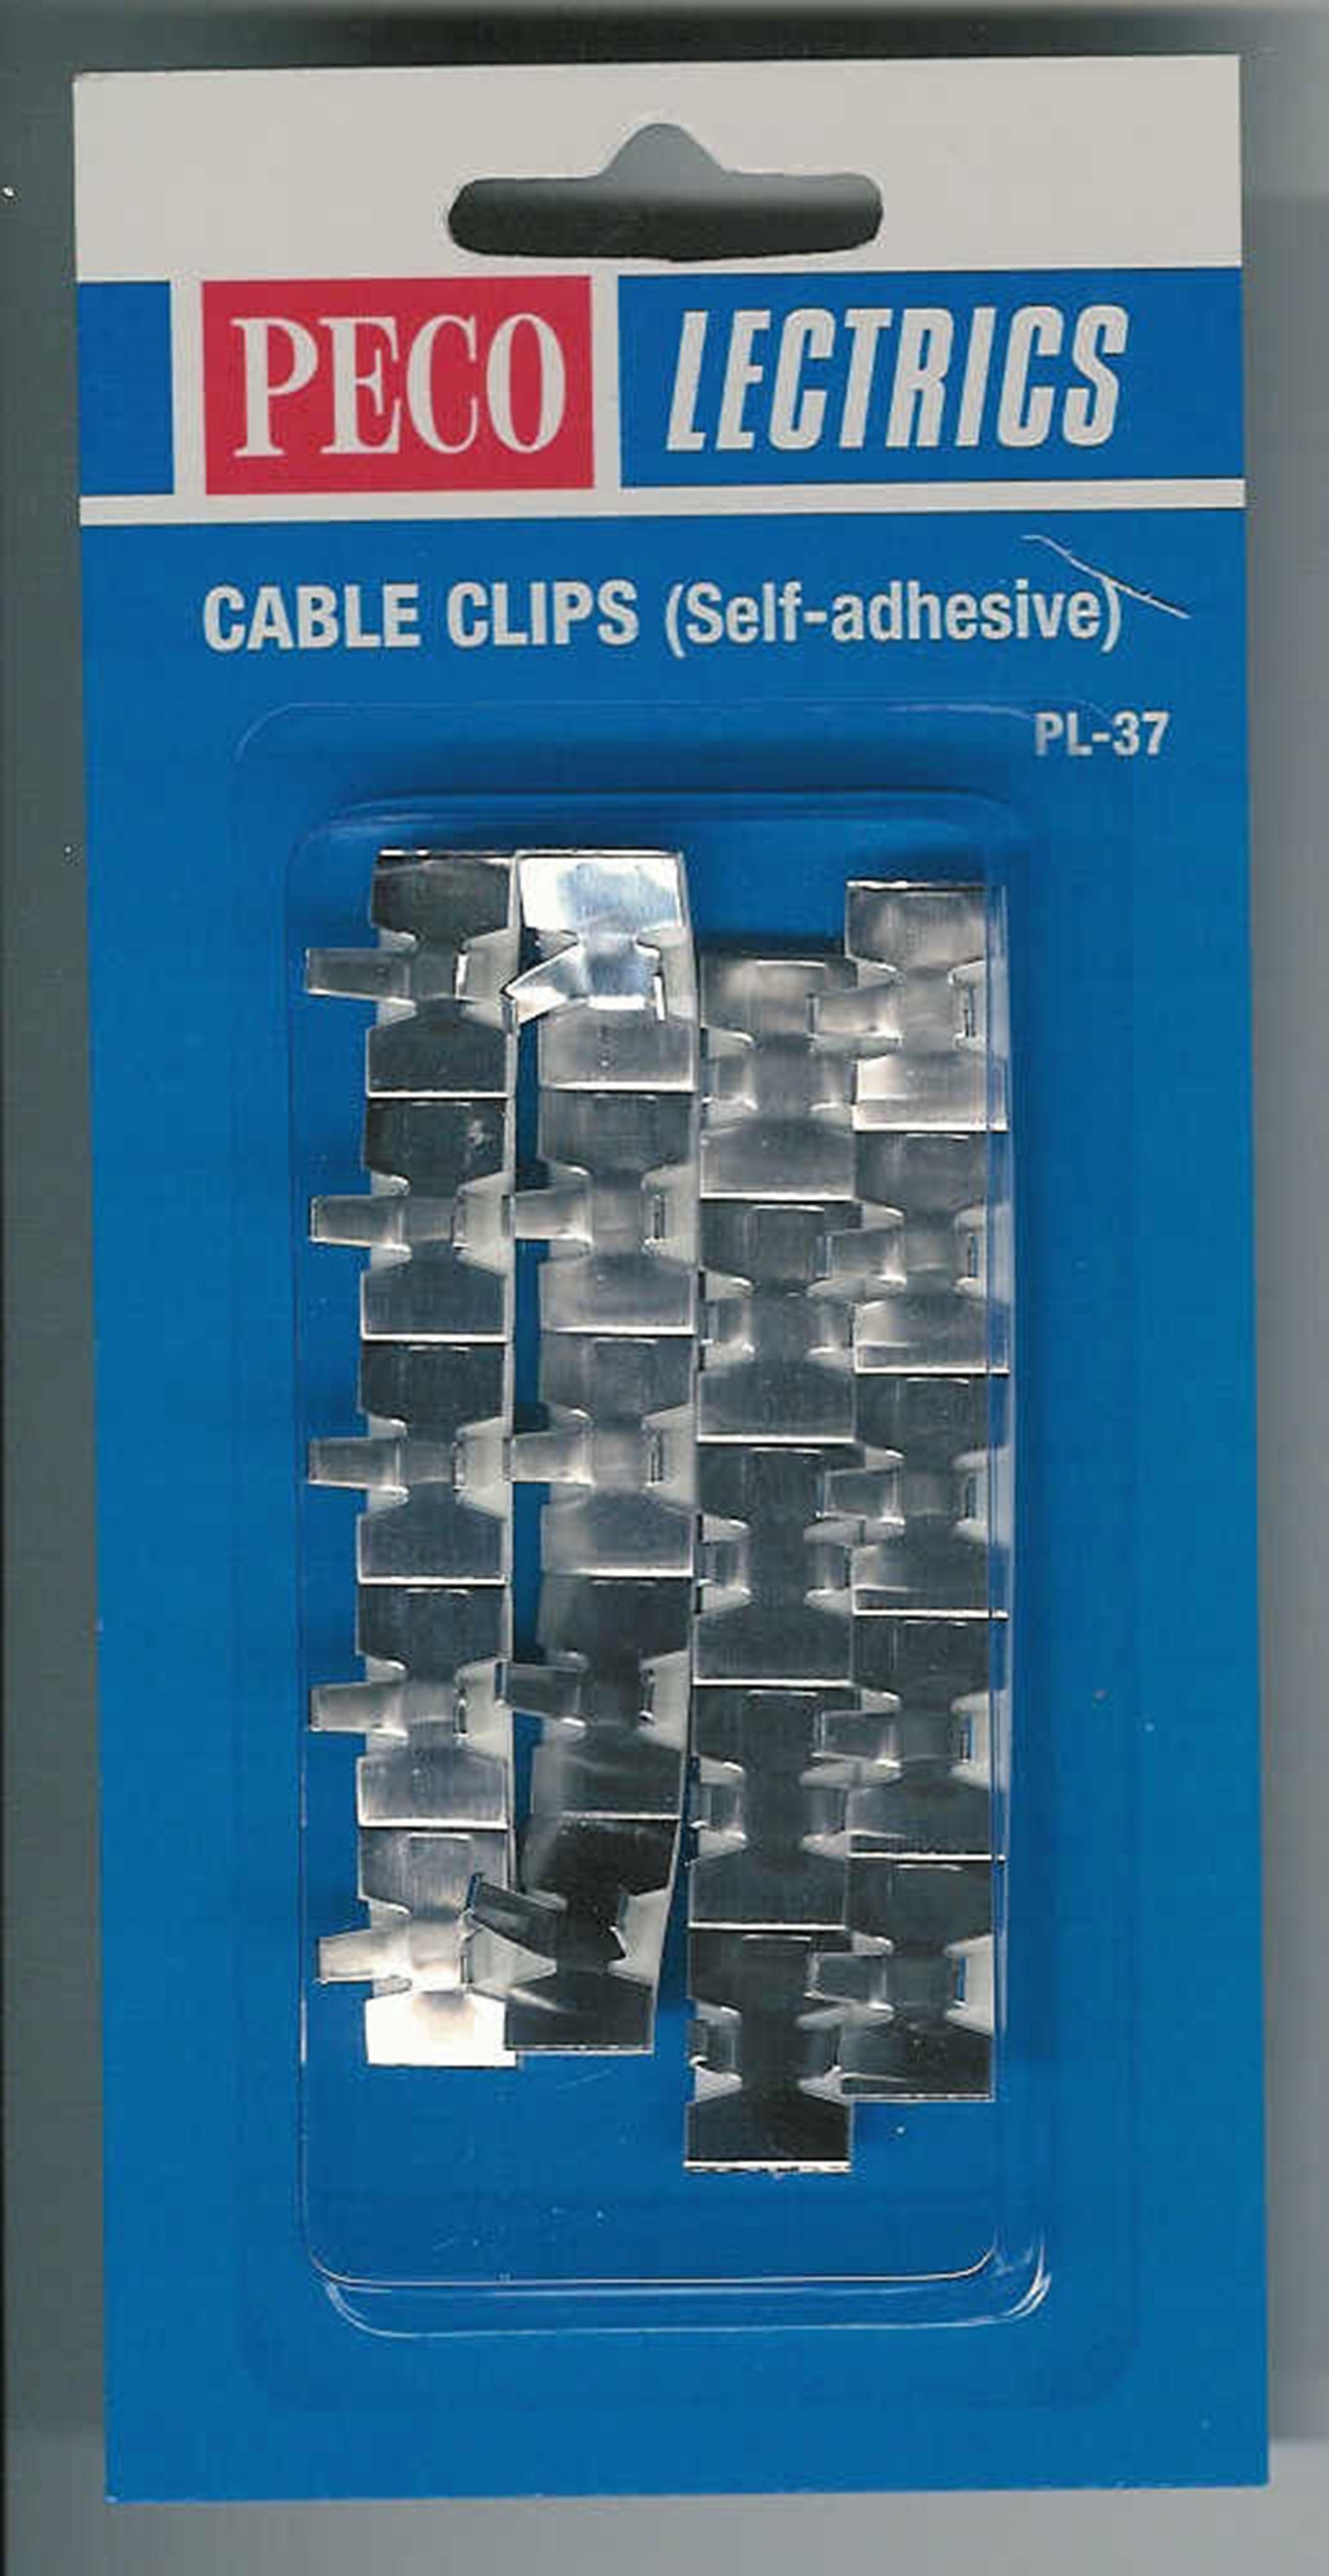 PL37 Cable Clips (Self-adhesive)